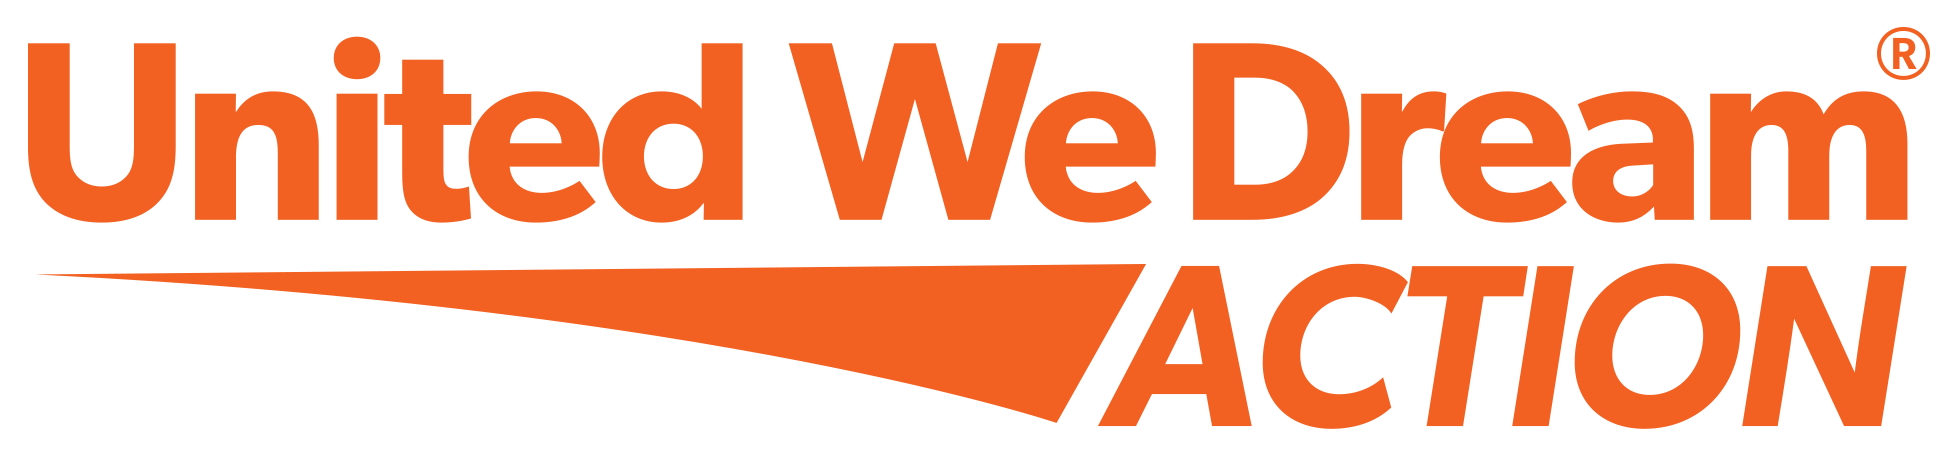 UnitedWeDreamAction-Logo-2016-HiRes-Orange (1).png